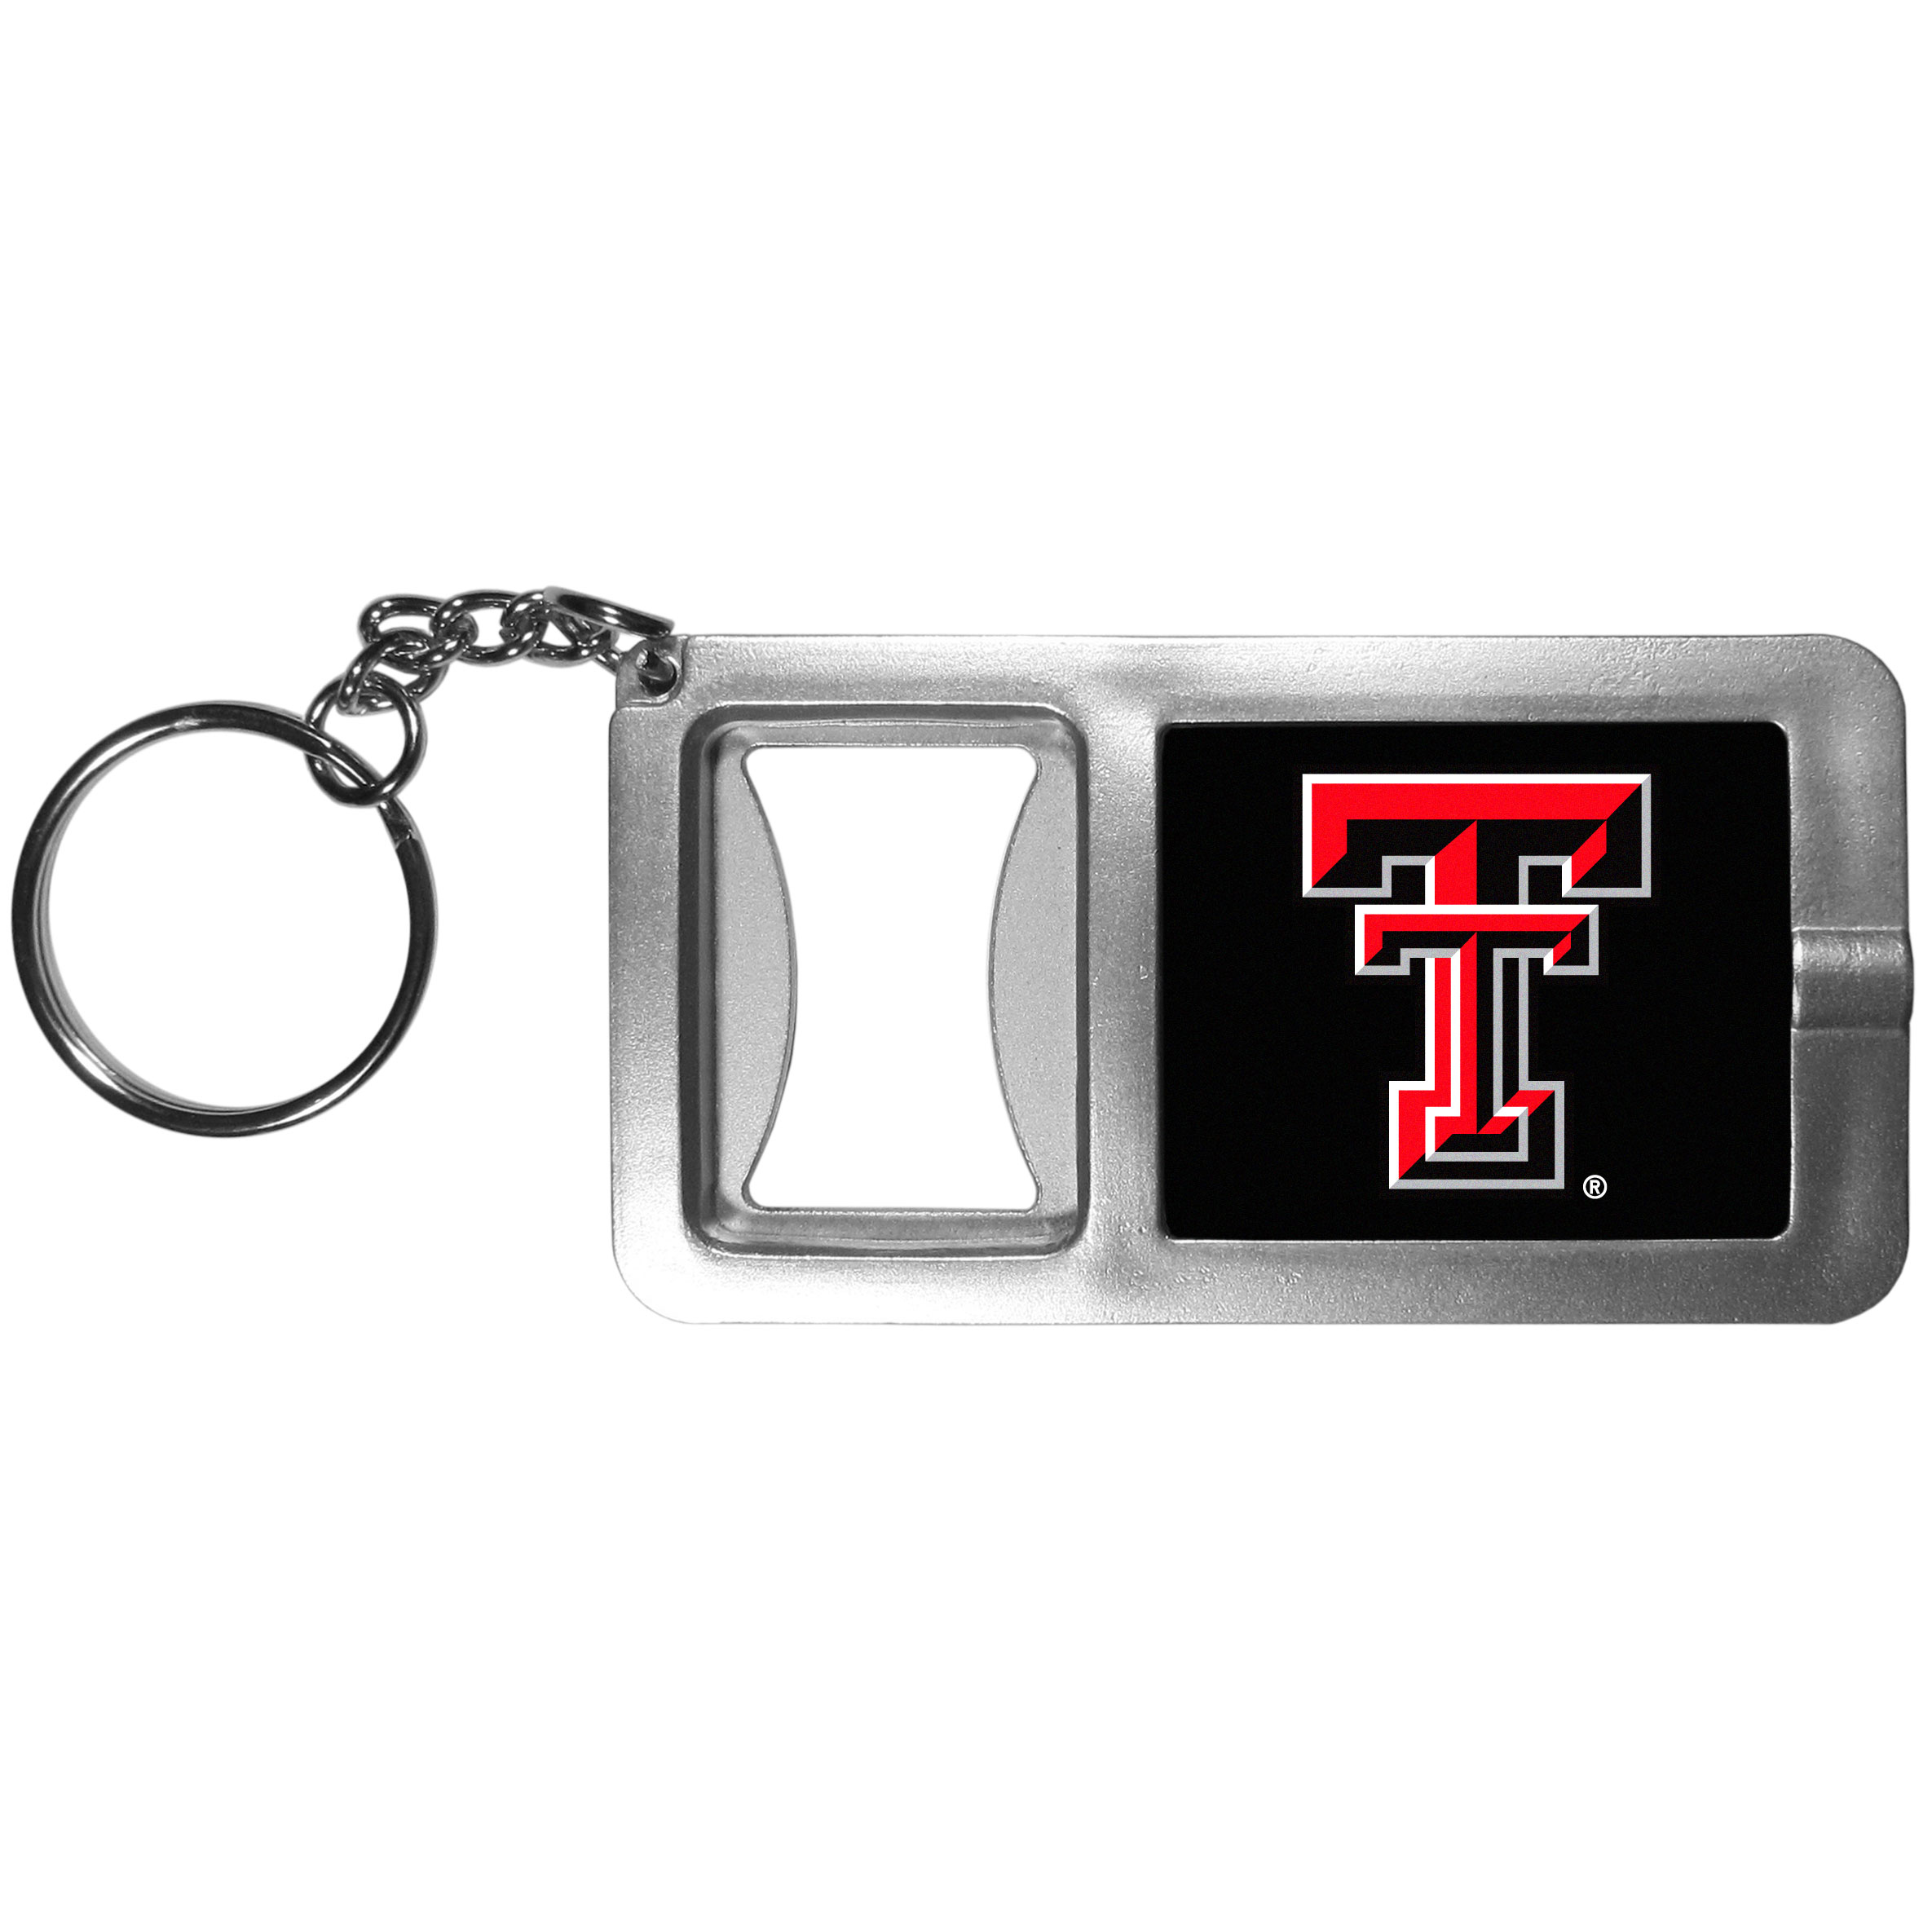 Texas Tech Raiders Flashlight Key Chain with Bottle Opener - Never be without light with our Texas Tech Raiders flashlight keychain that features a handy bottle opener feature. This versatile key chain is perfect for camping and travel and is a great way to show off your team pride!